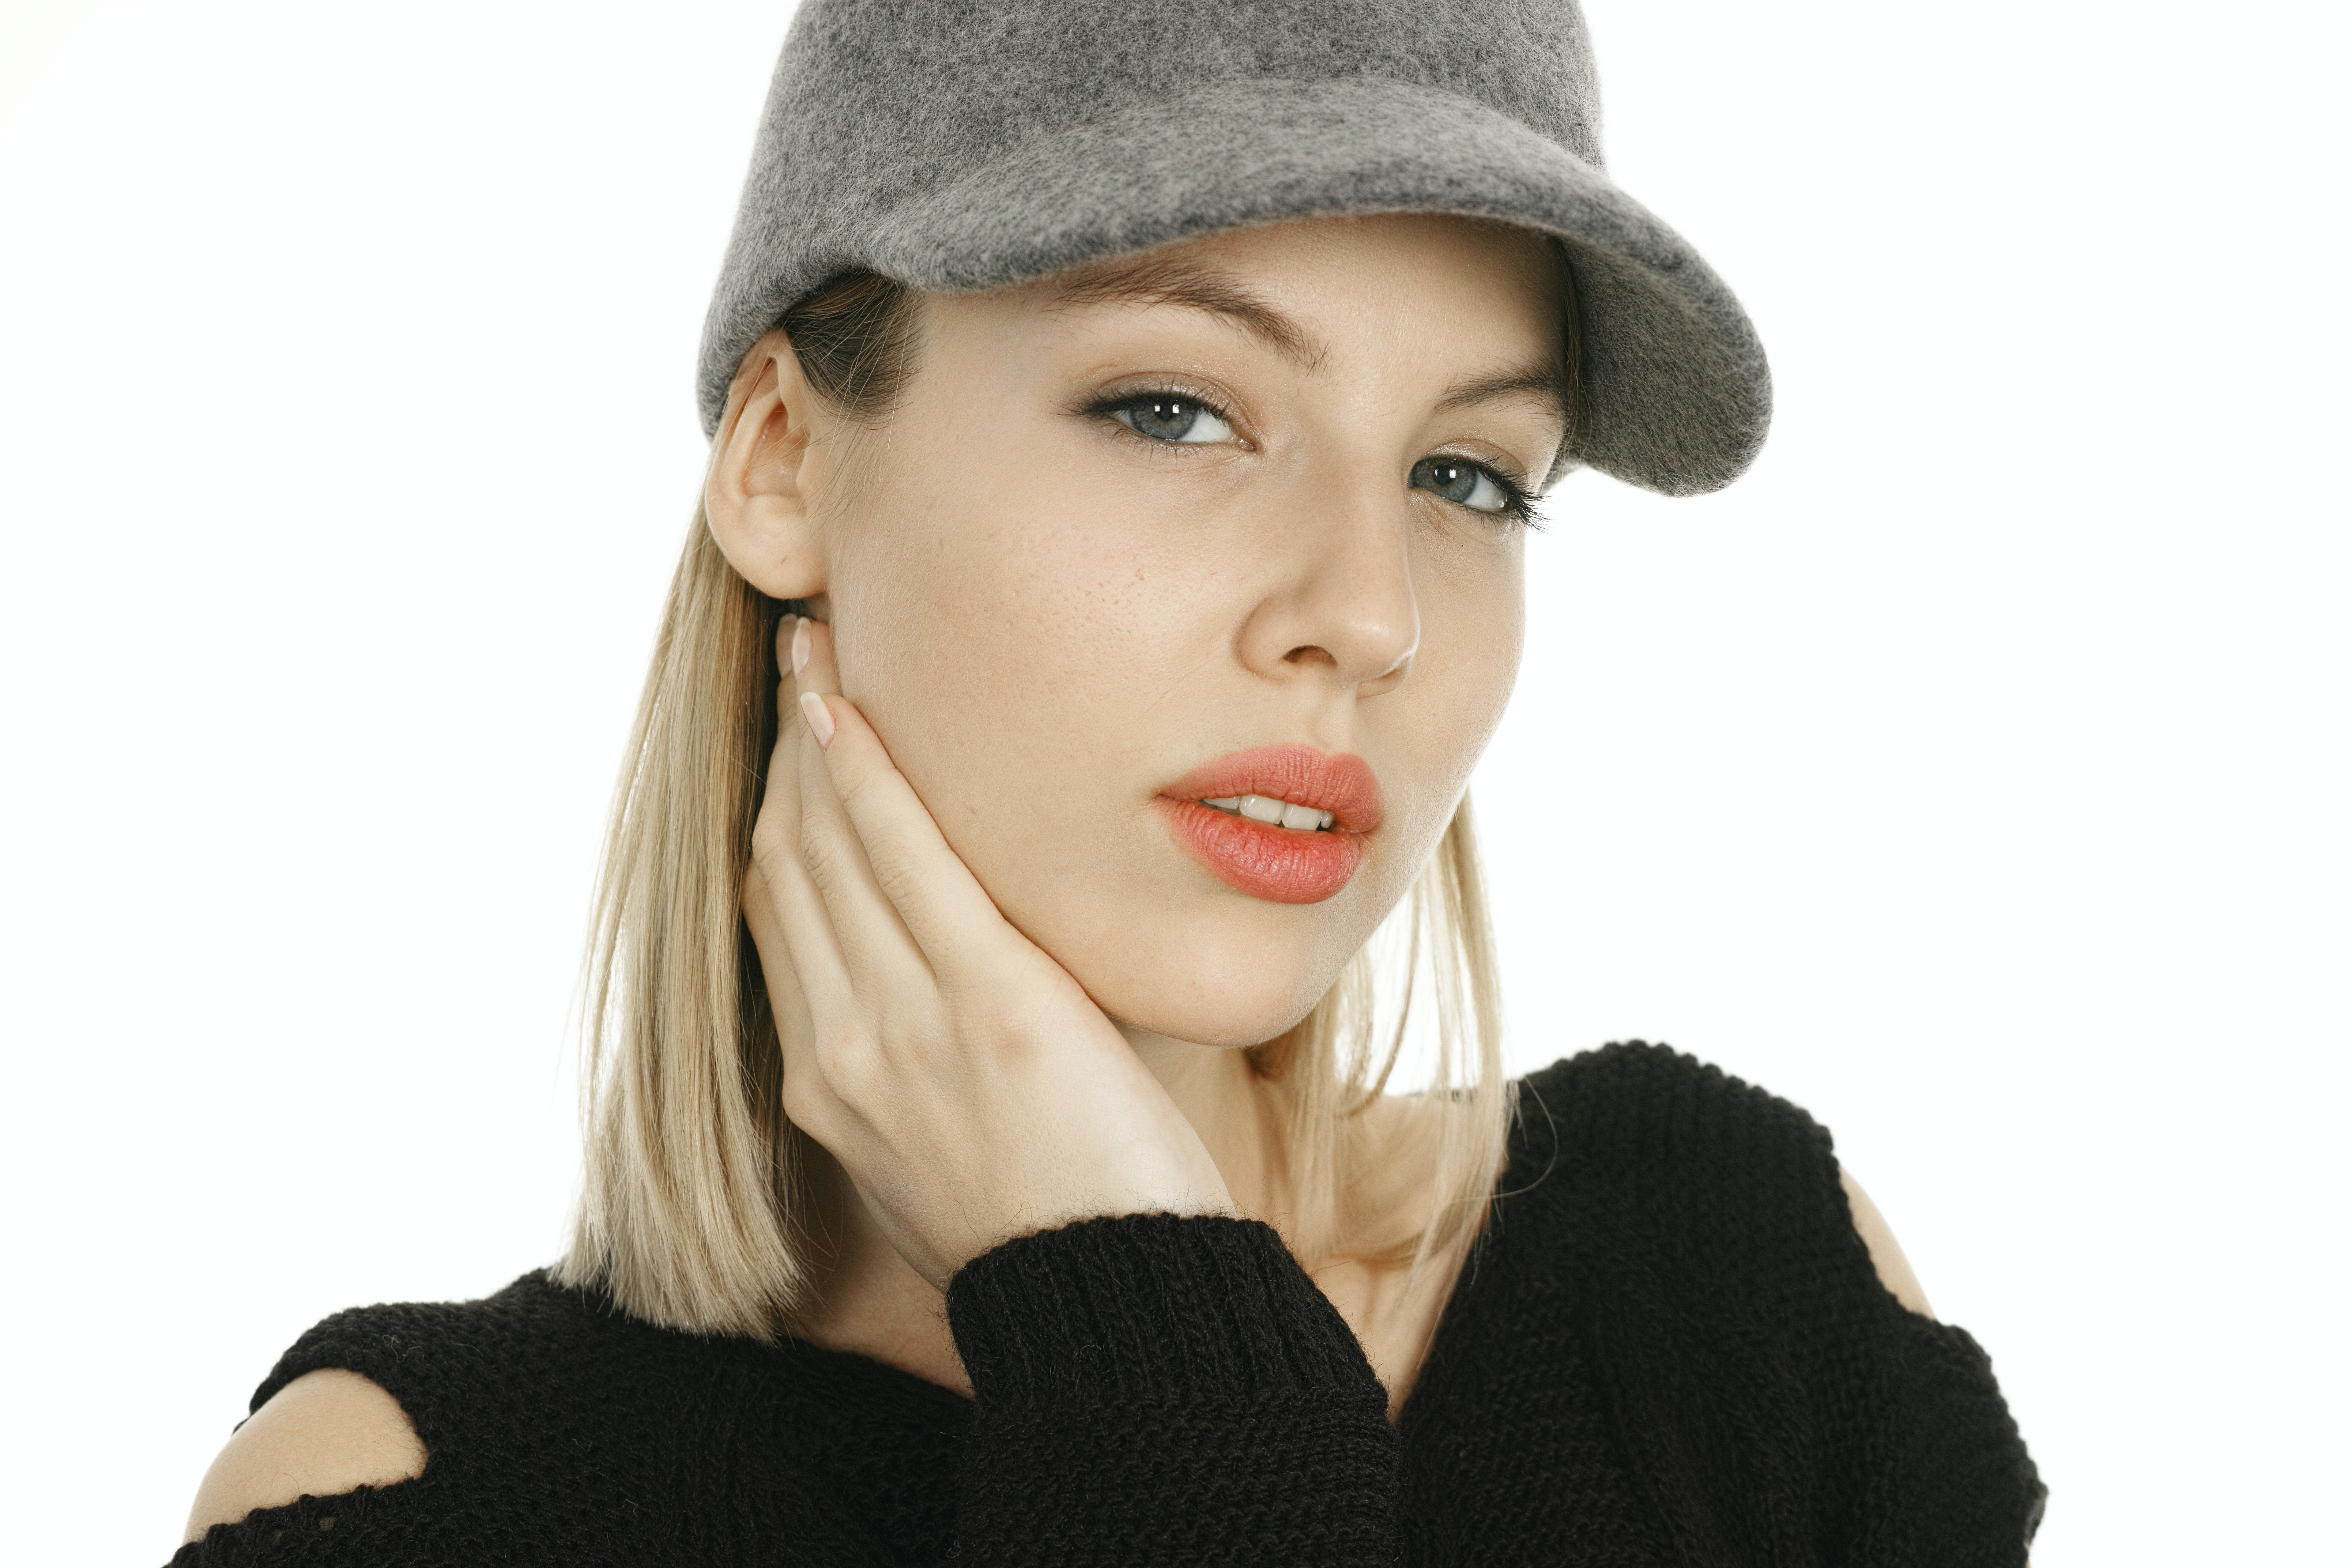 cf51af9f1 Woman Making Model Pose Holding Her Neck · Free Stock Photo